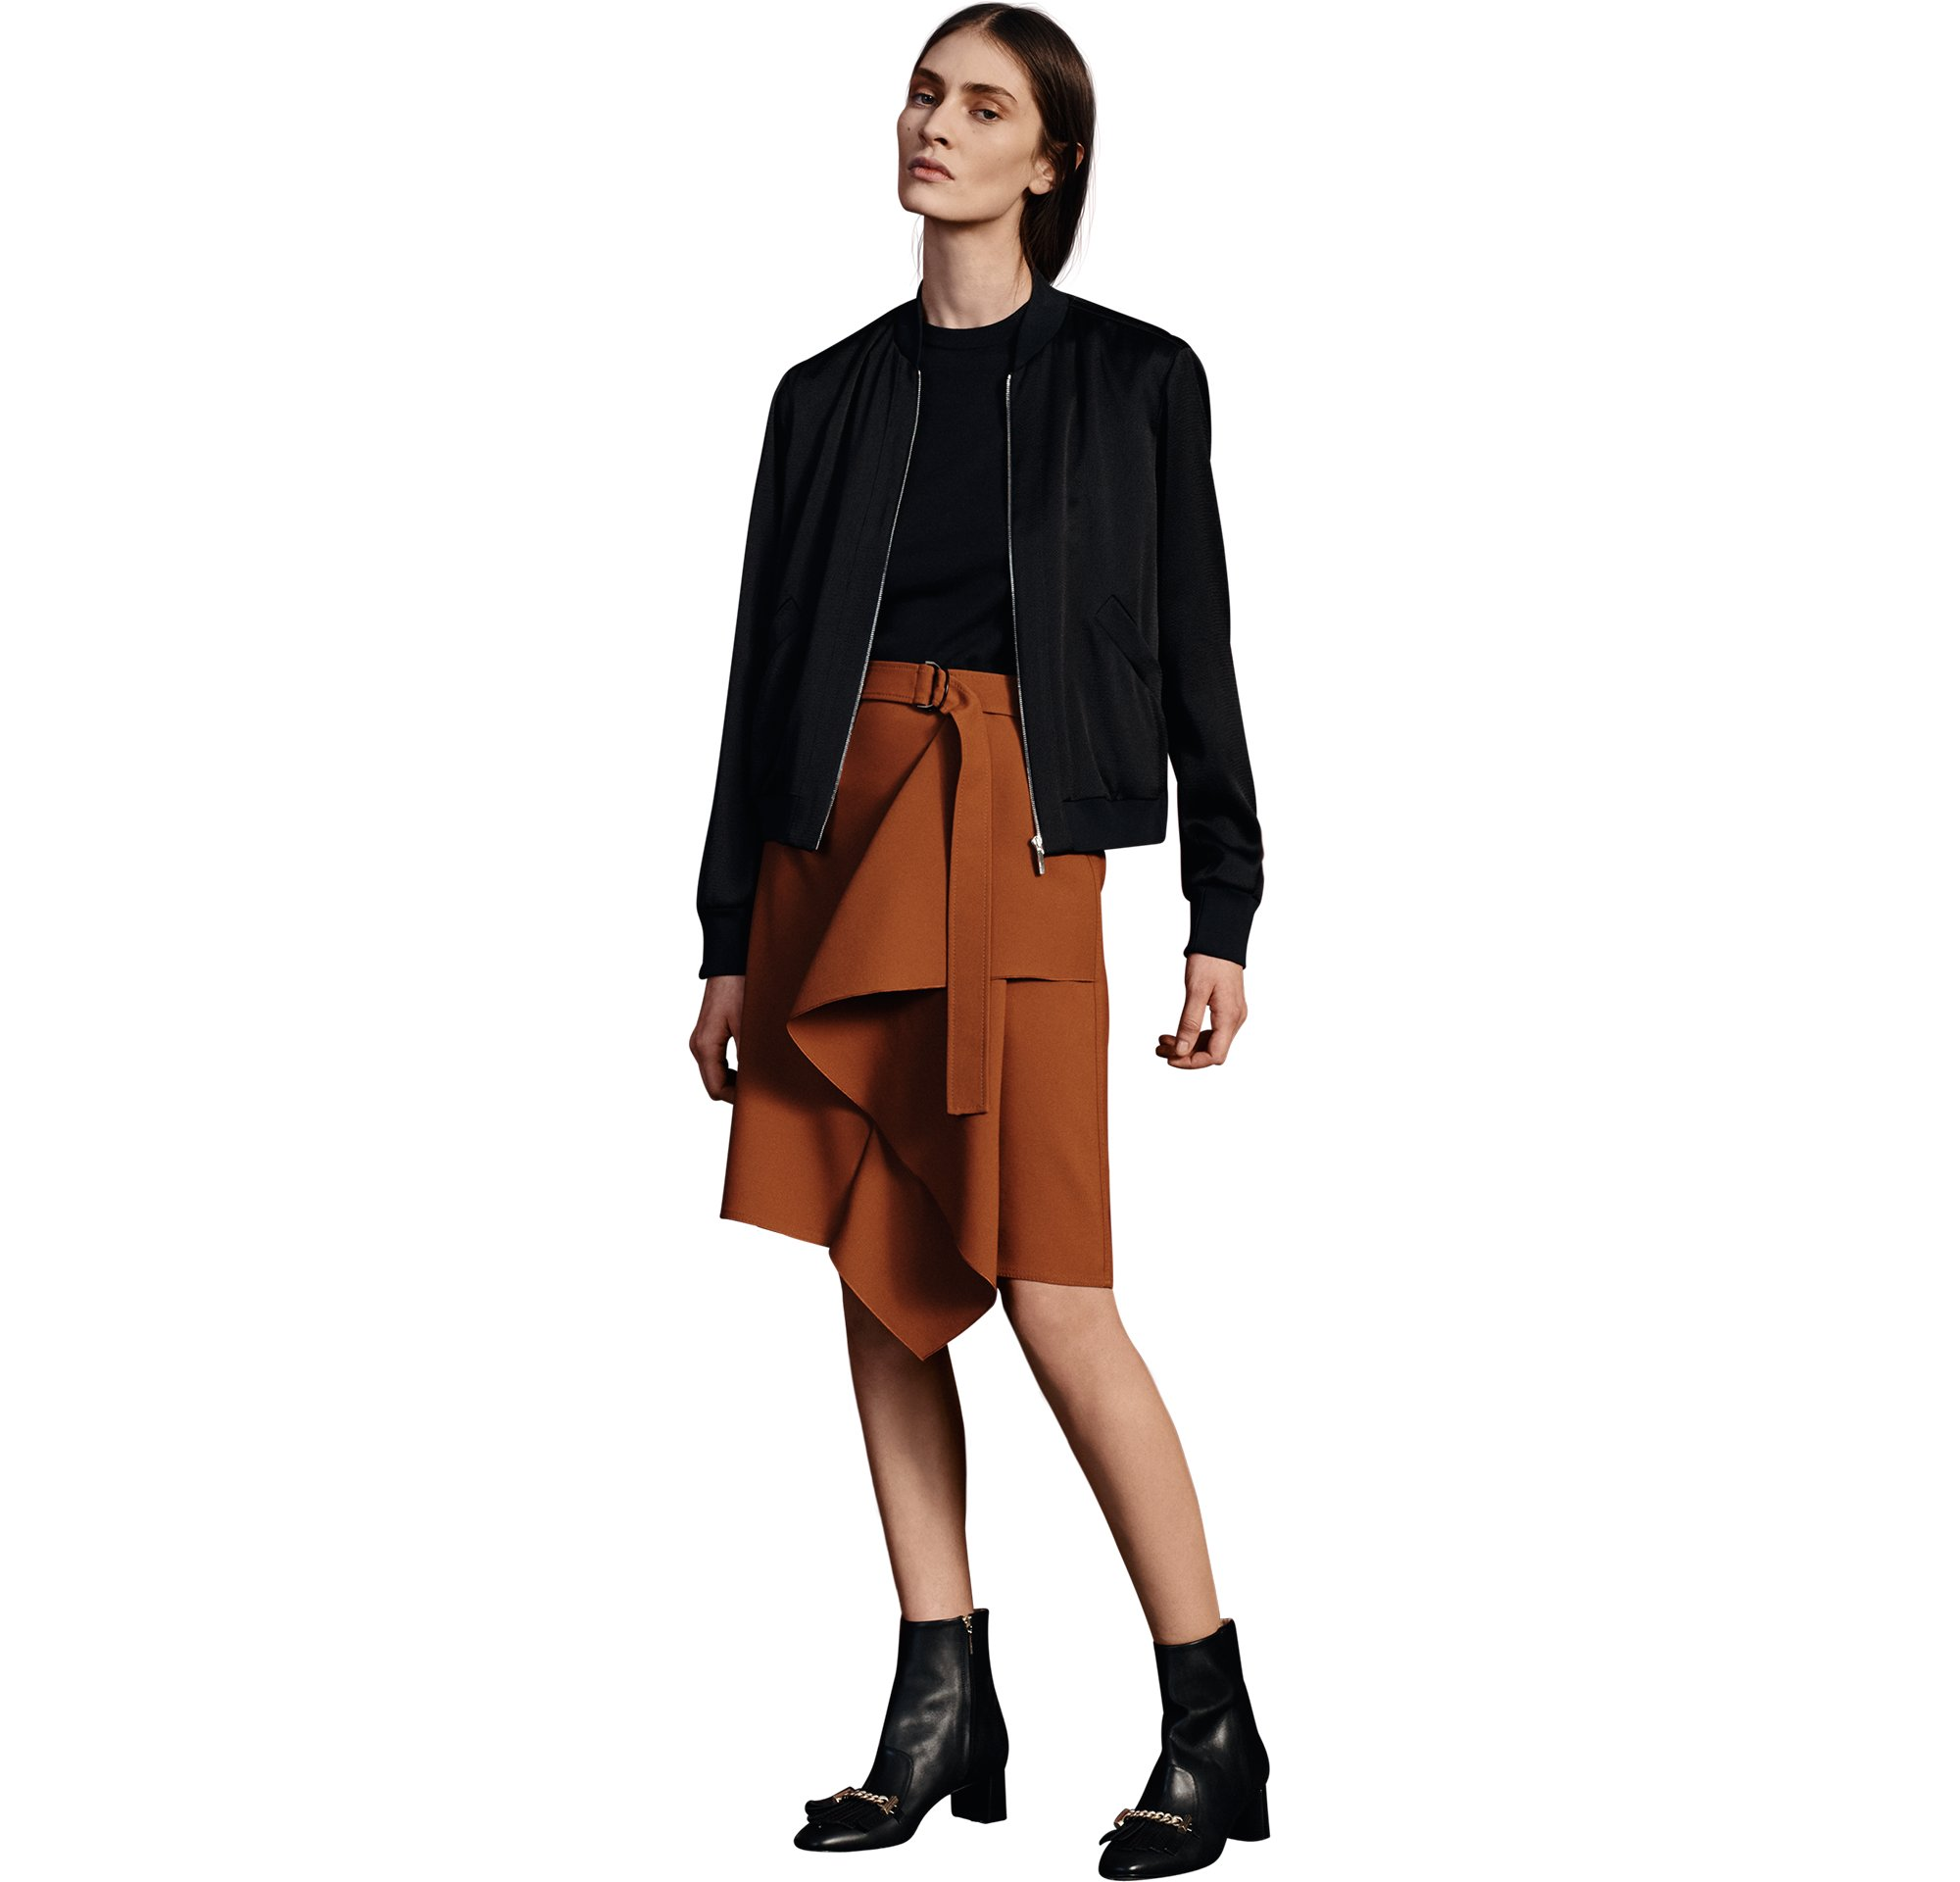 BOSS_Women_FW17_Look_13,